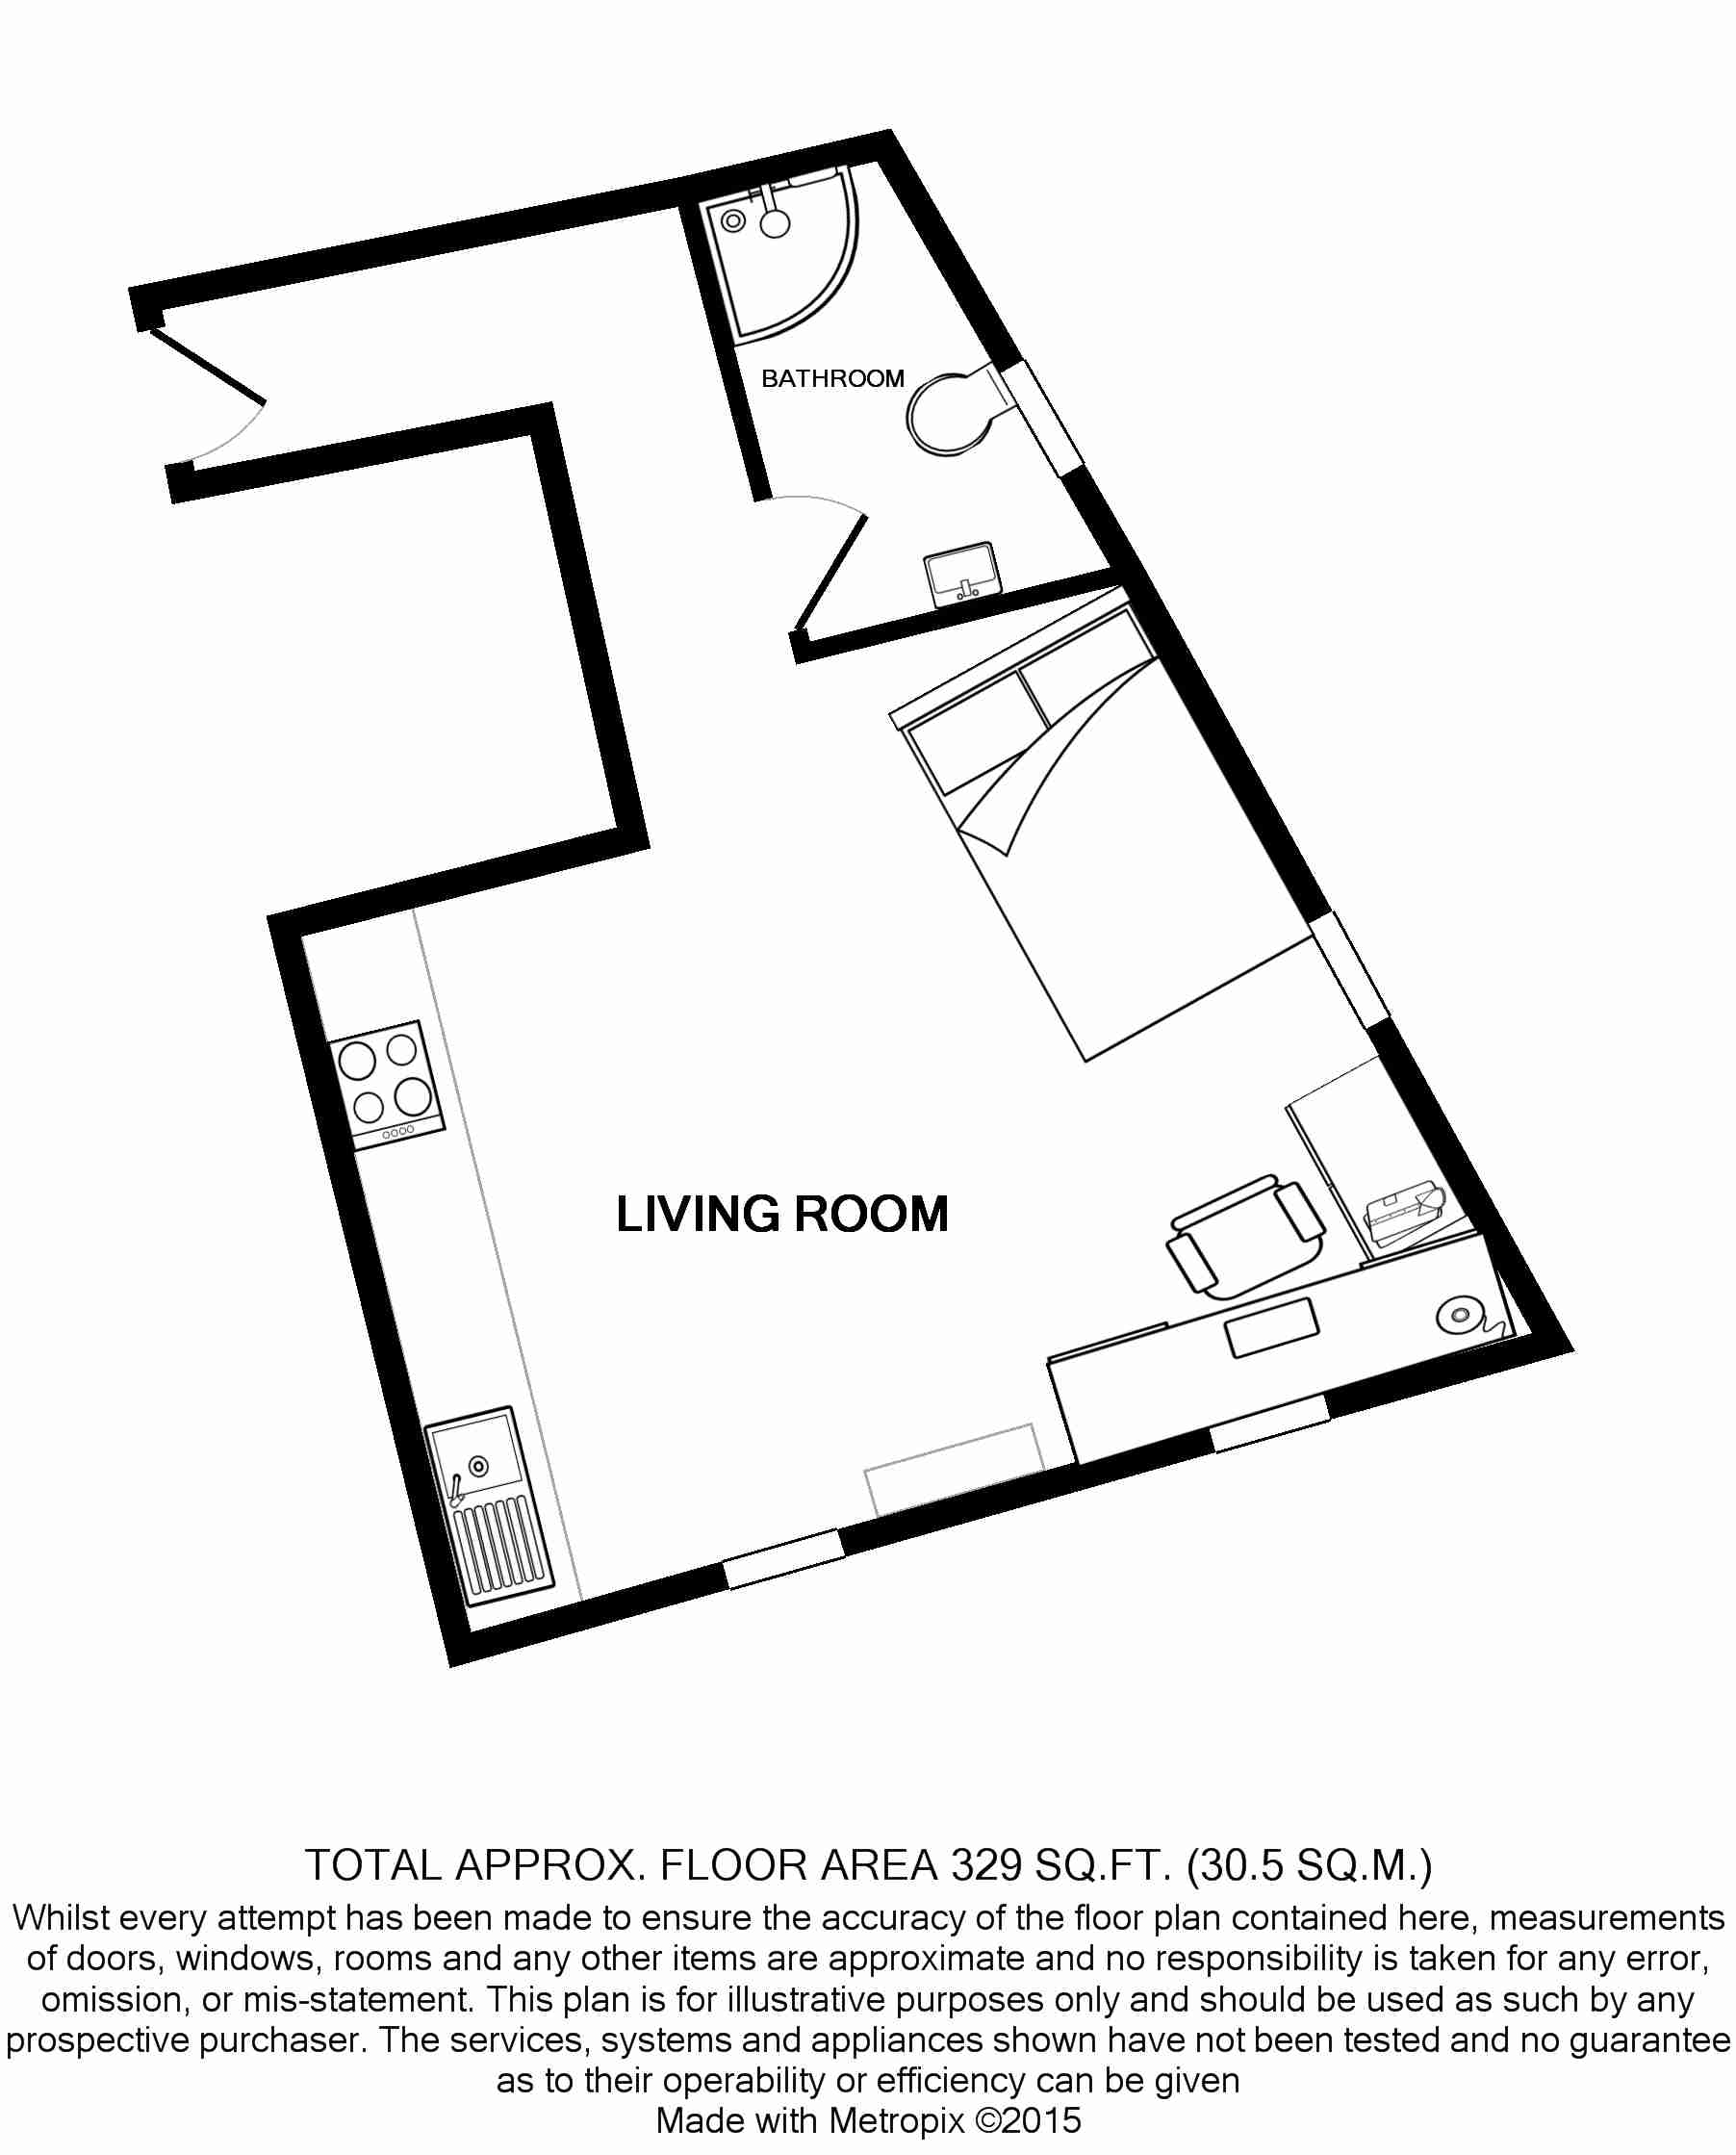 Flat U, Park View, Nottingham Student House, Floorplans